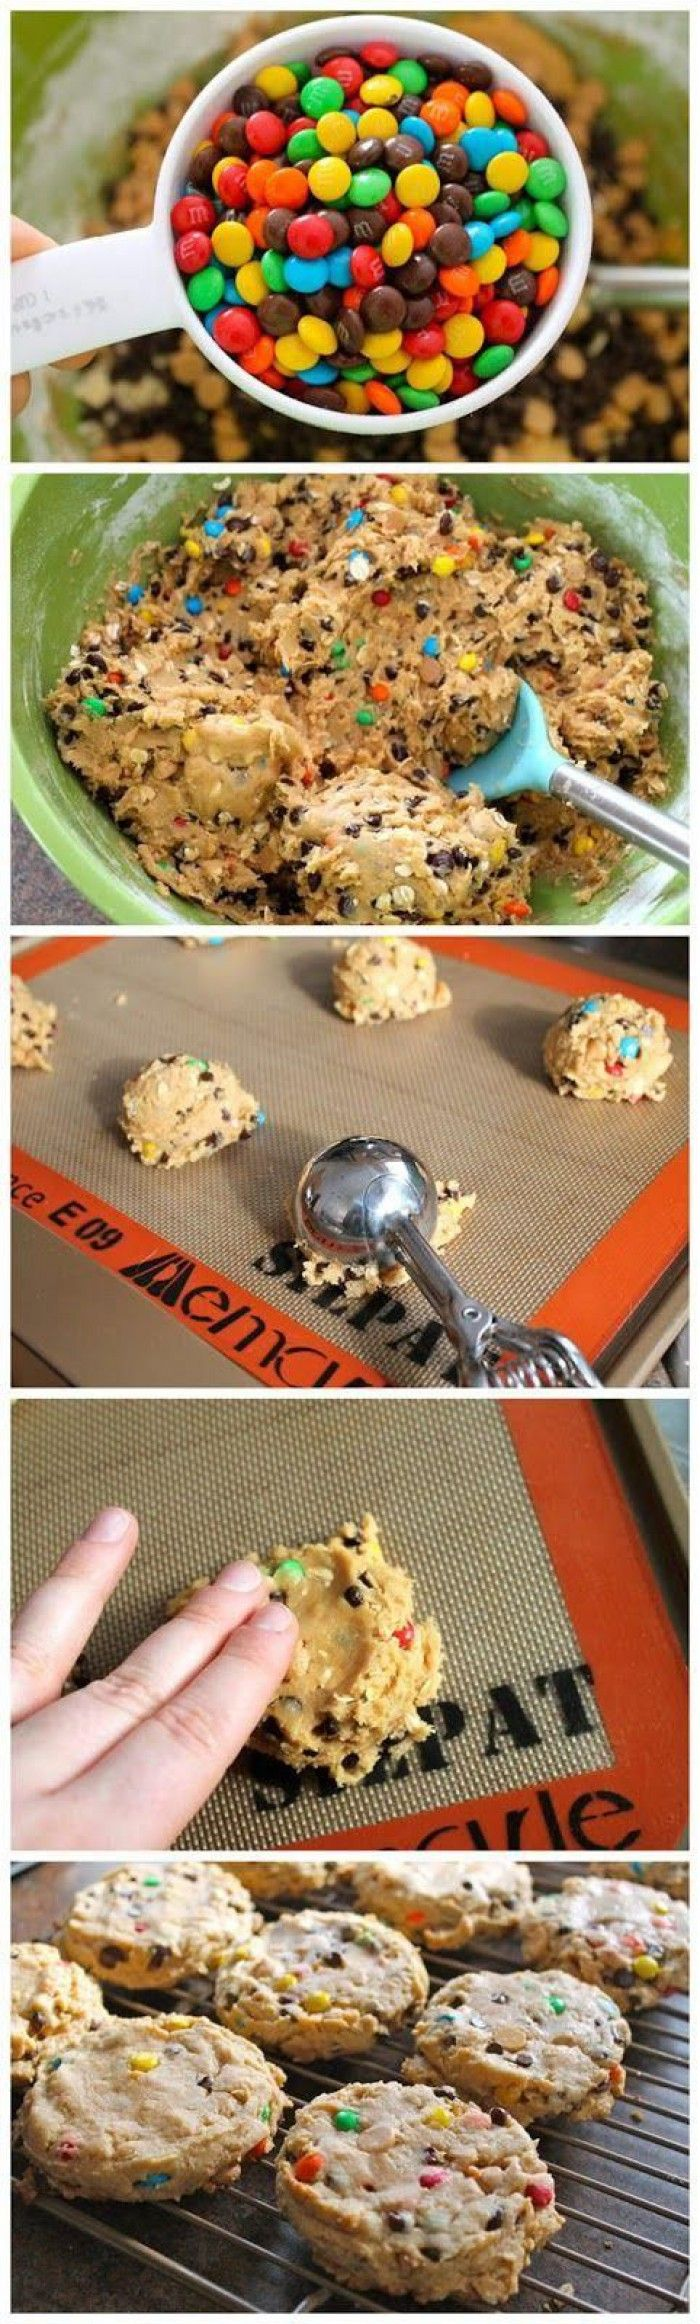 Maak je m&m koekjes  Soft Monster Cookies: 1/2 cup or 1 stick of butter (at…